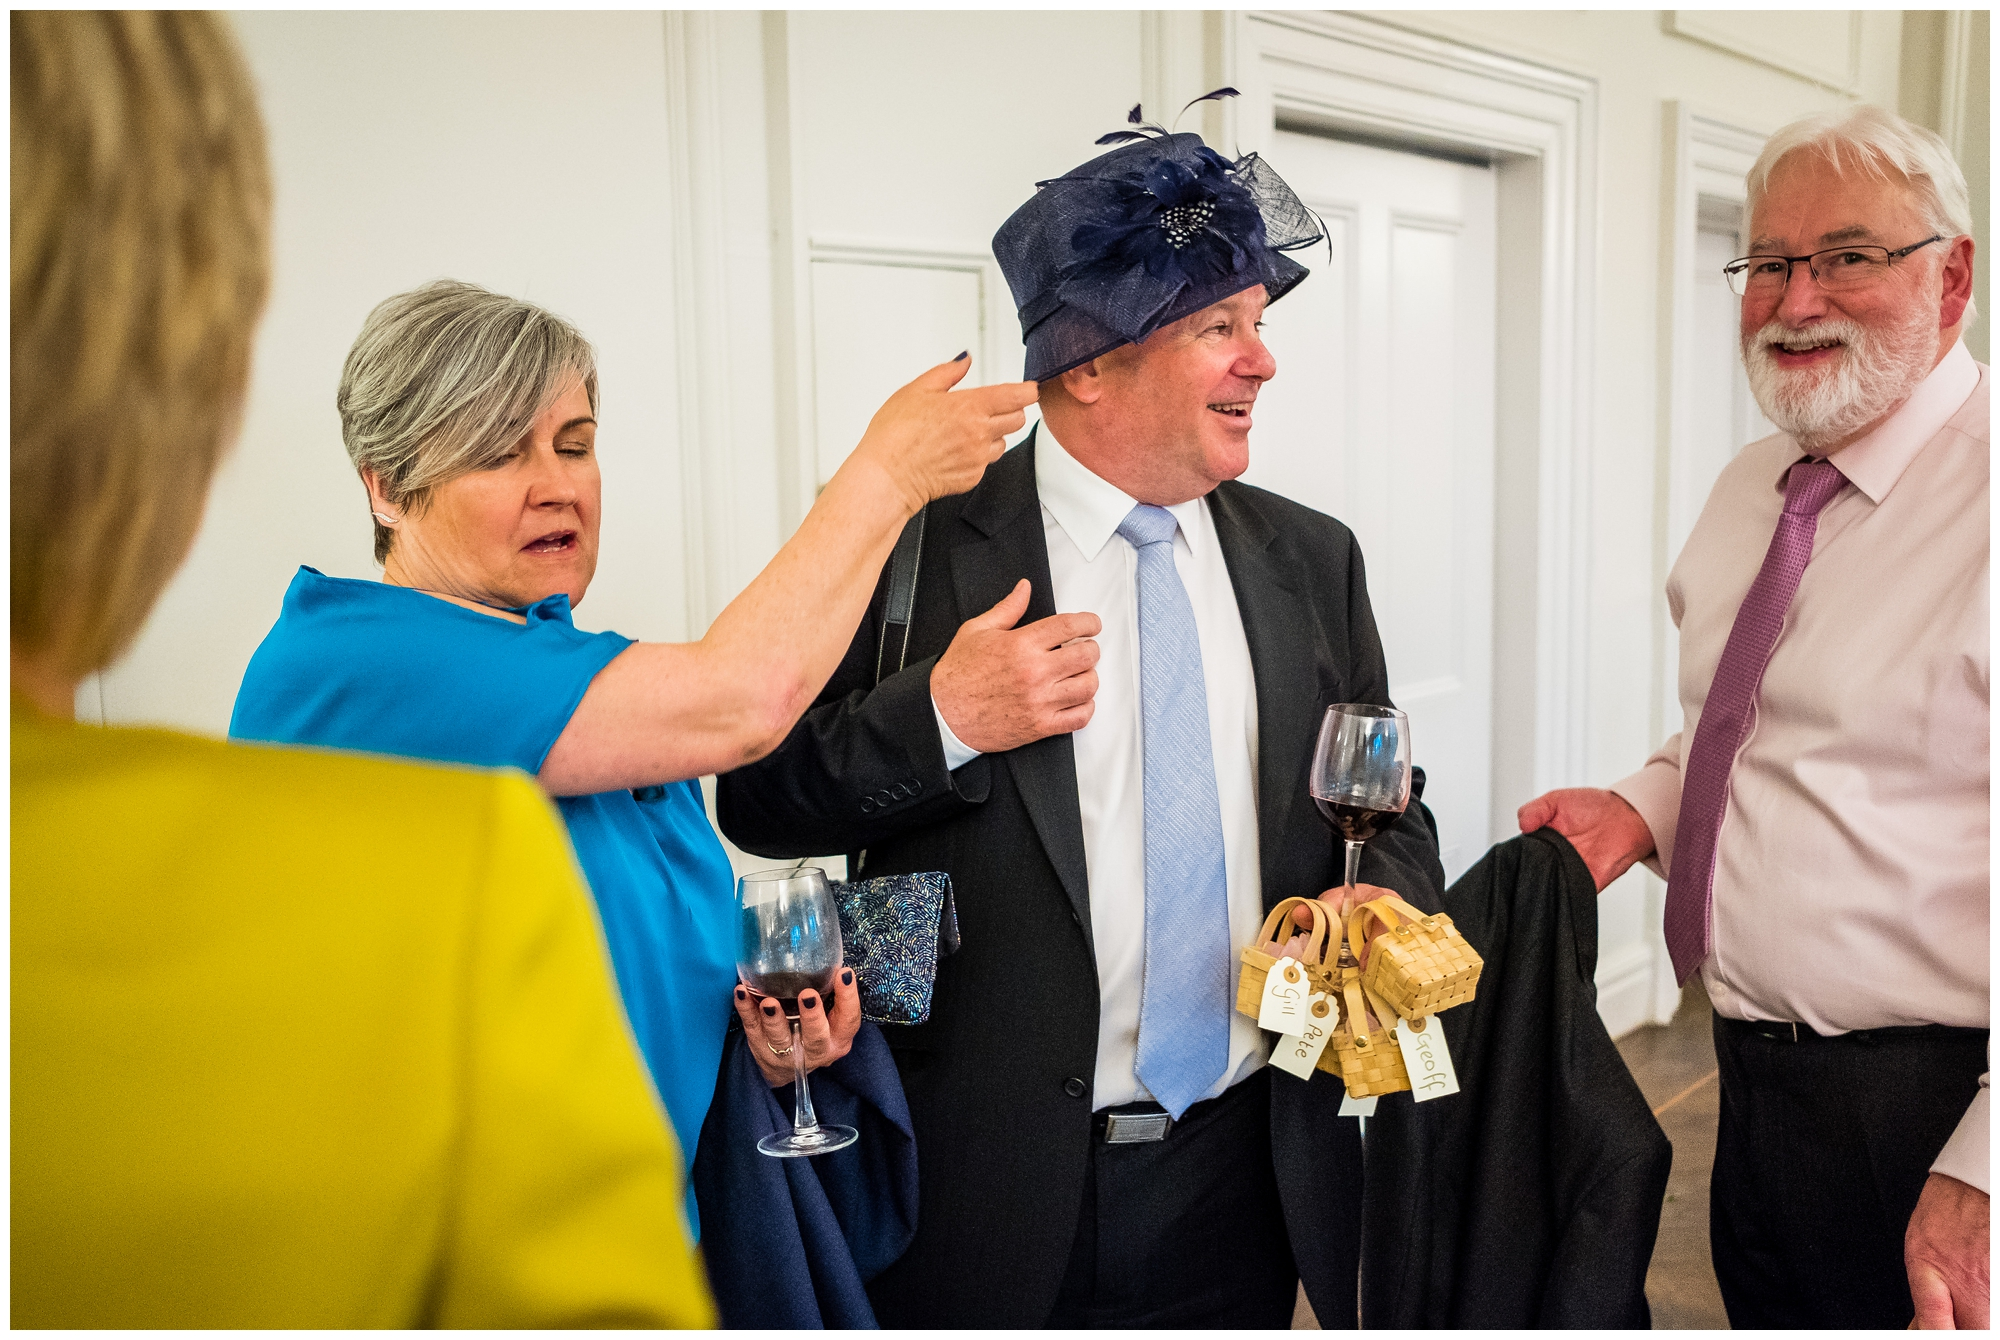 guests playing with hats